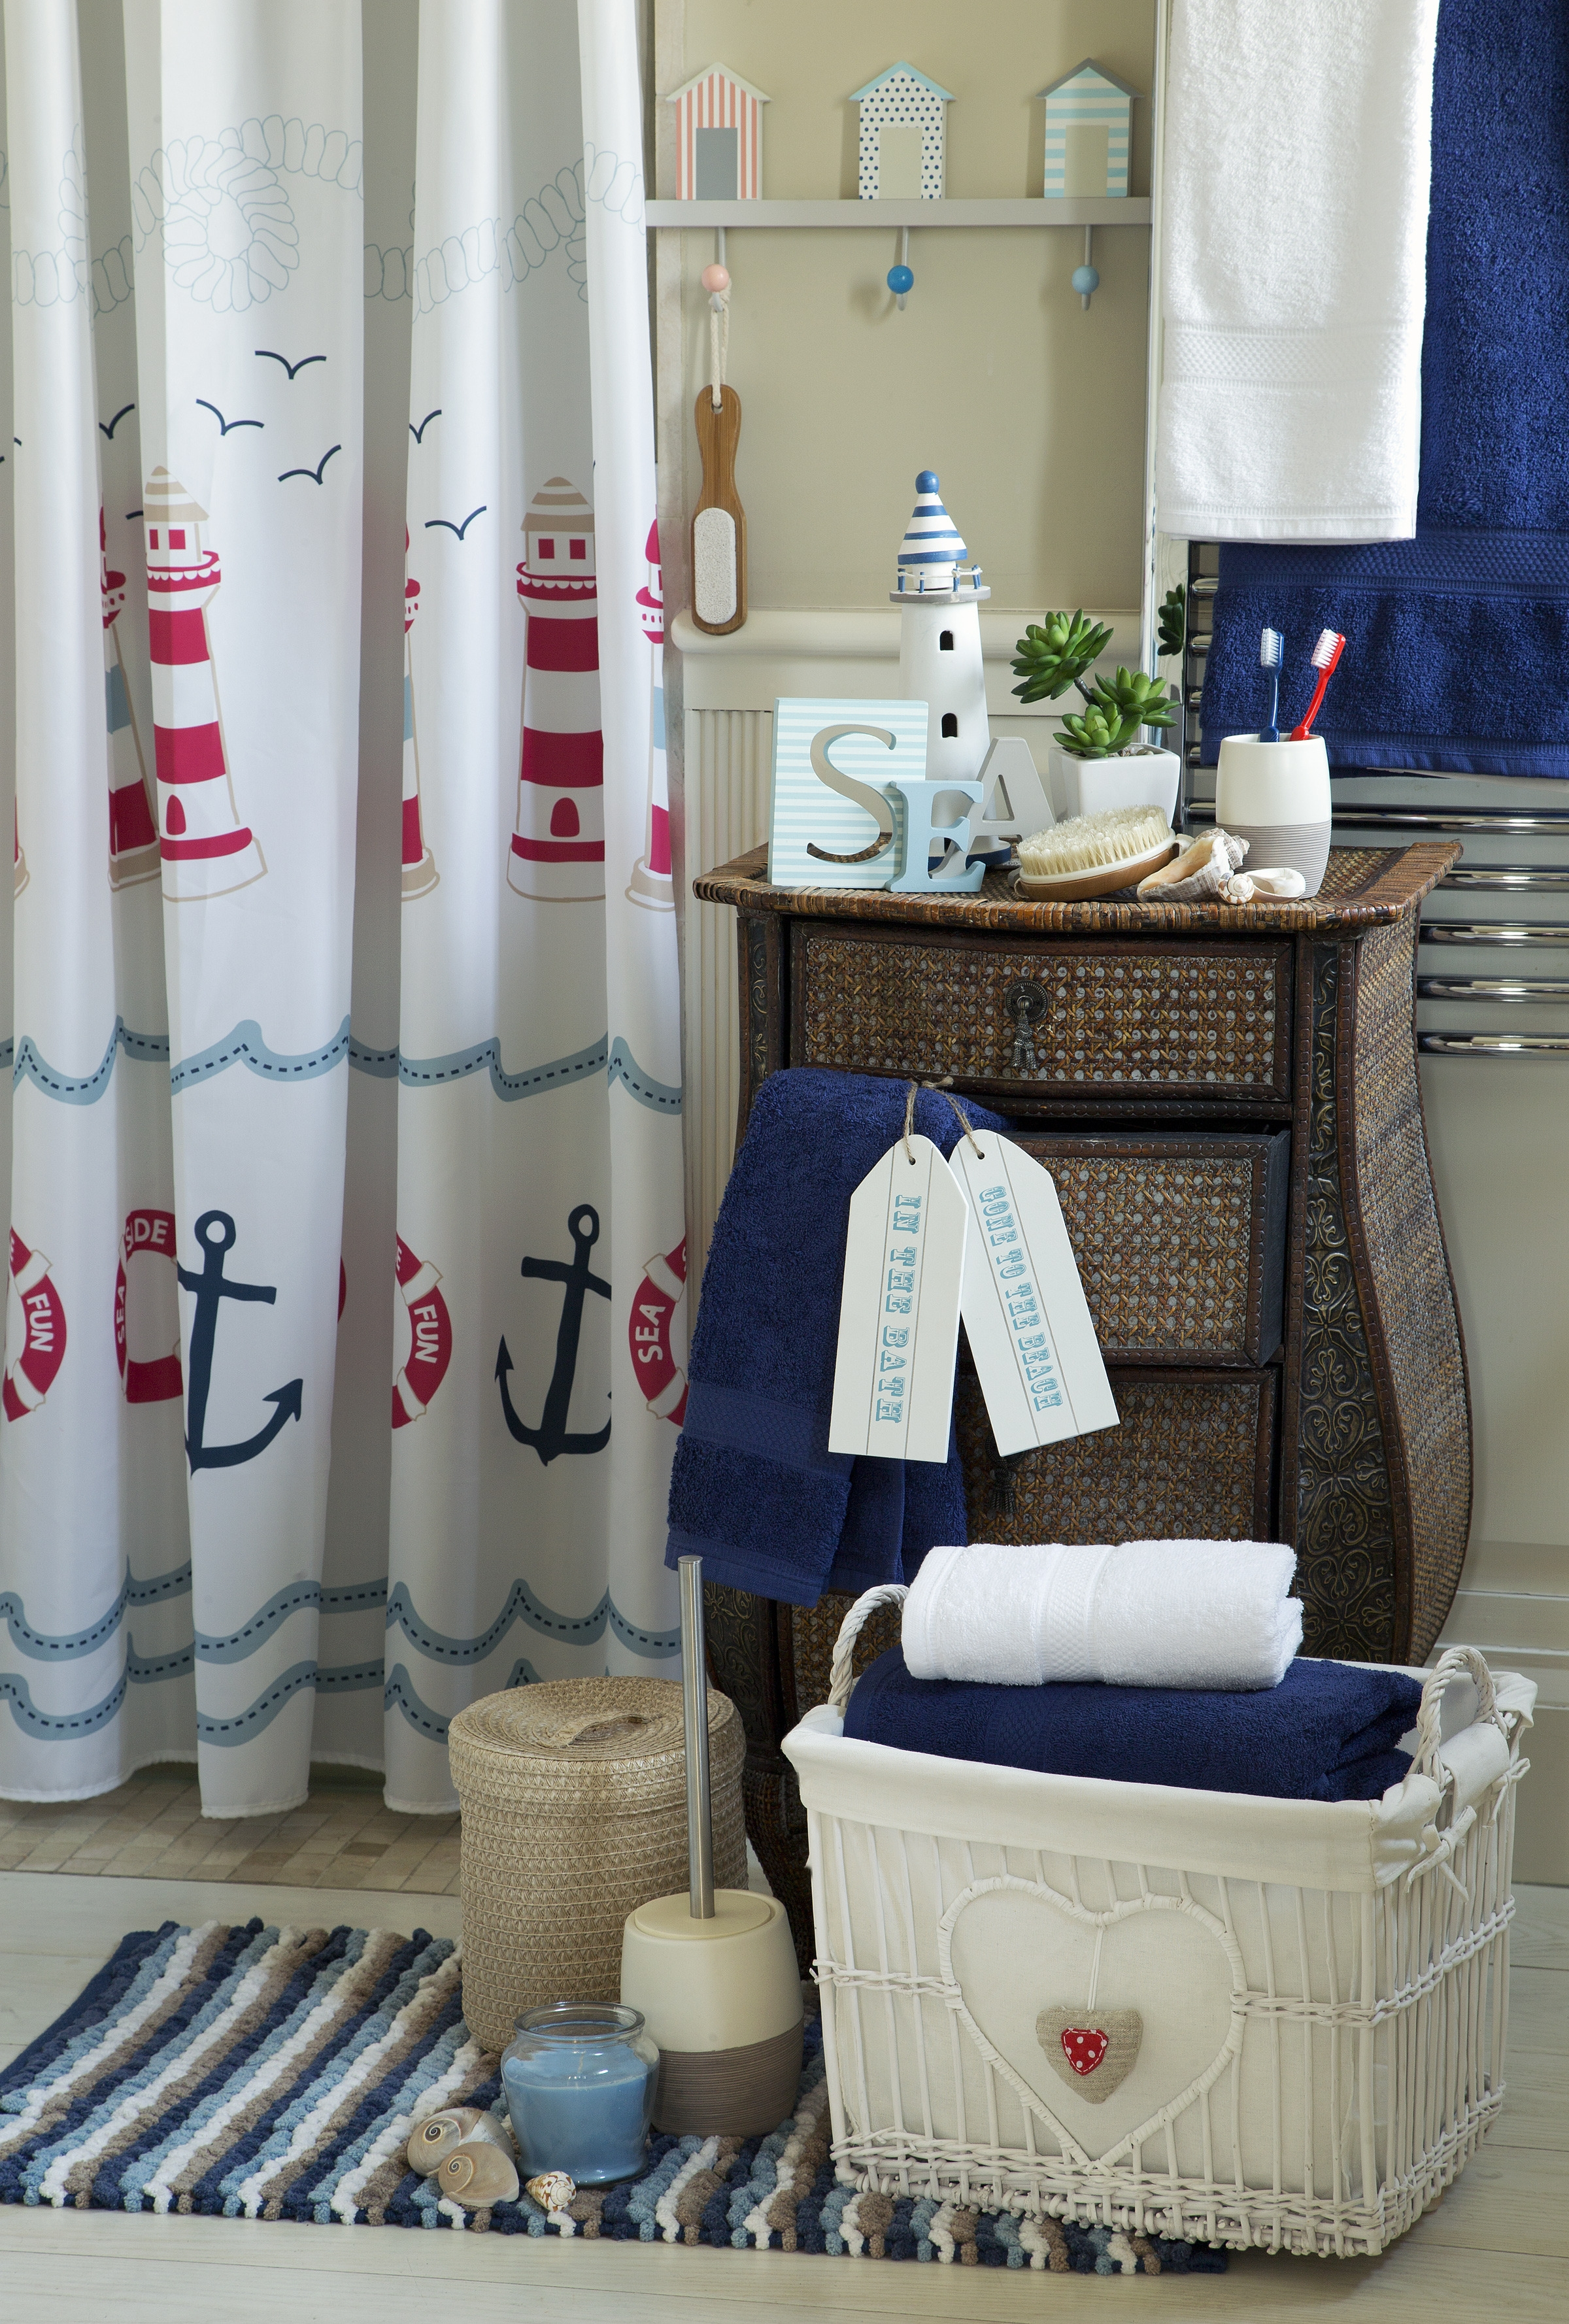 Lighthouse Themed Bathroom Rugsi am replacing my blue lighthouse shower curtain with this one